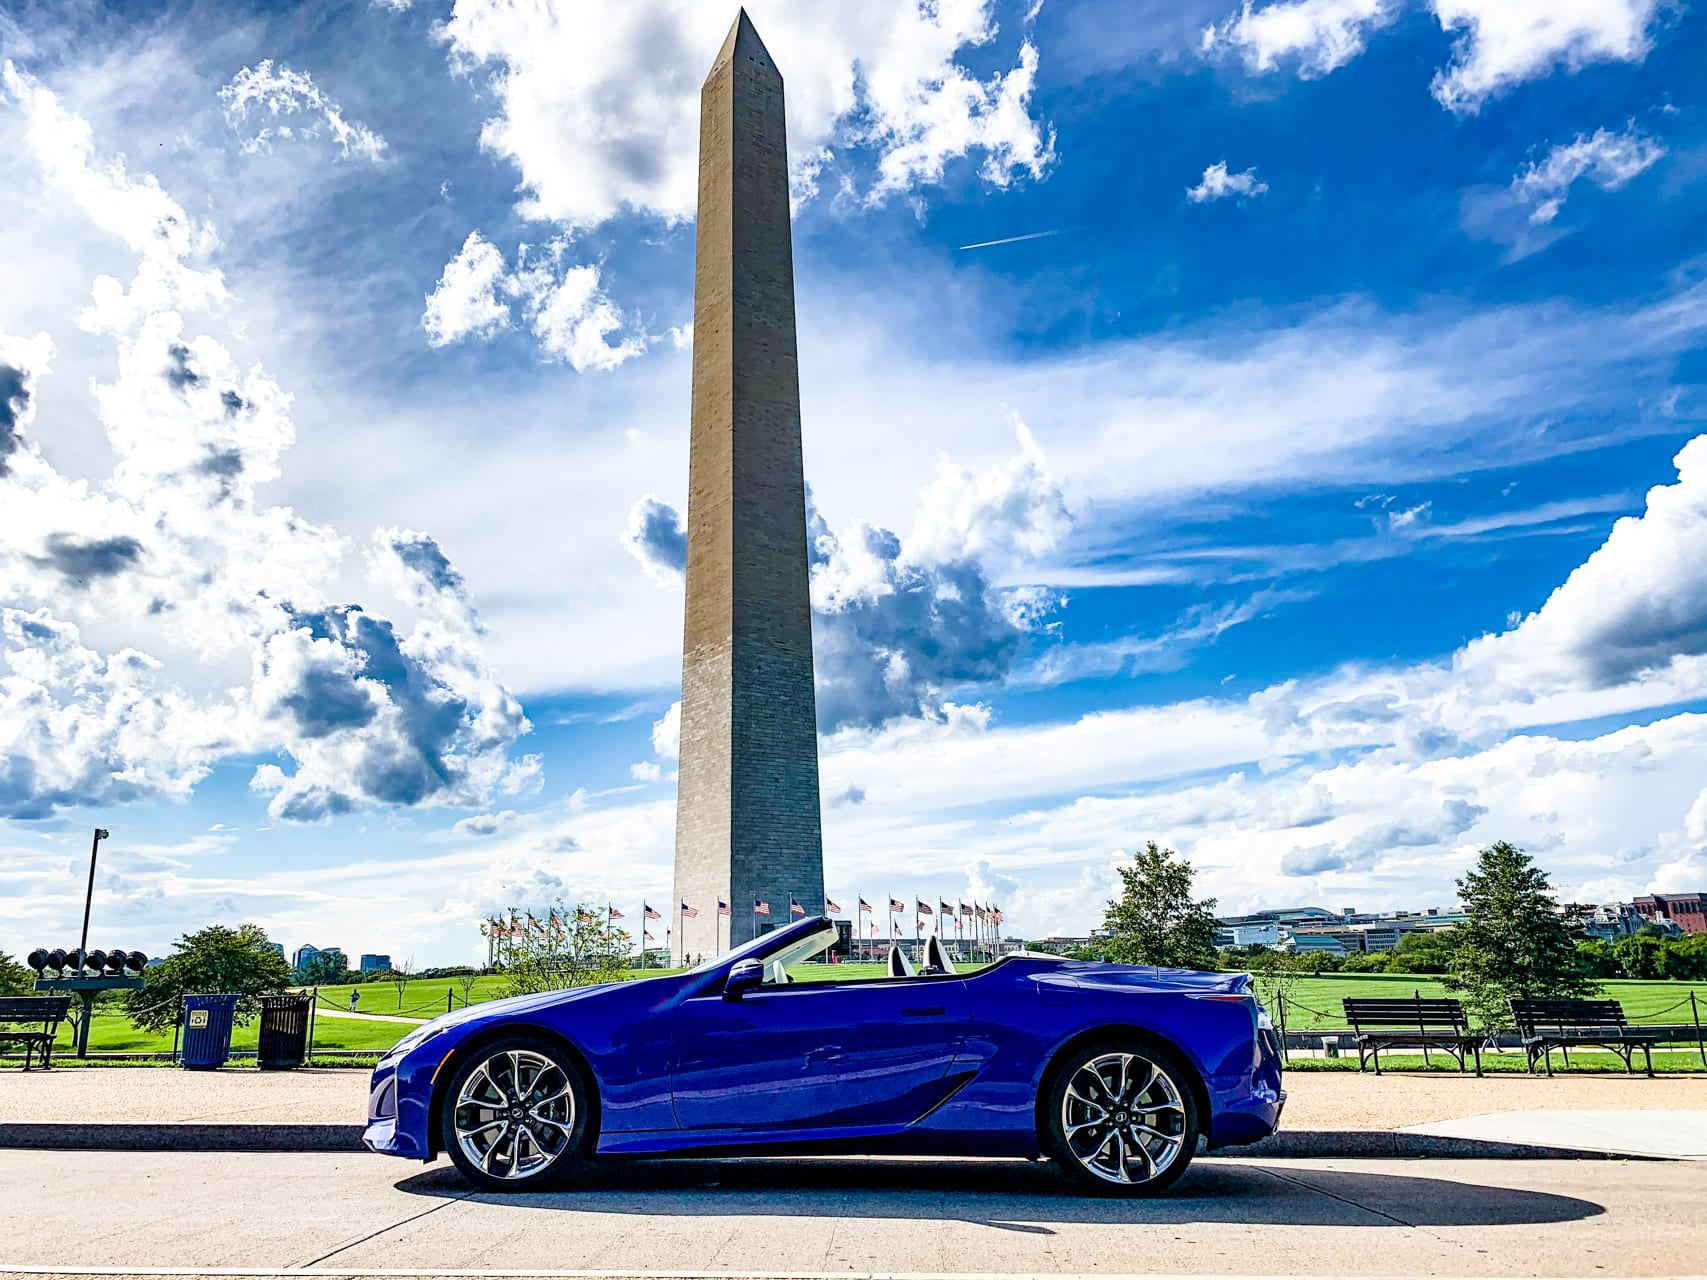 2021 Lexus LC 500 Convertible Inspiration Series